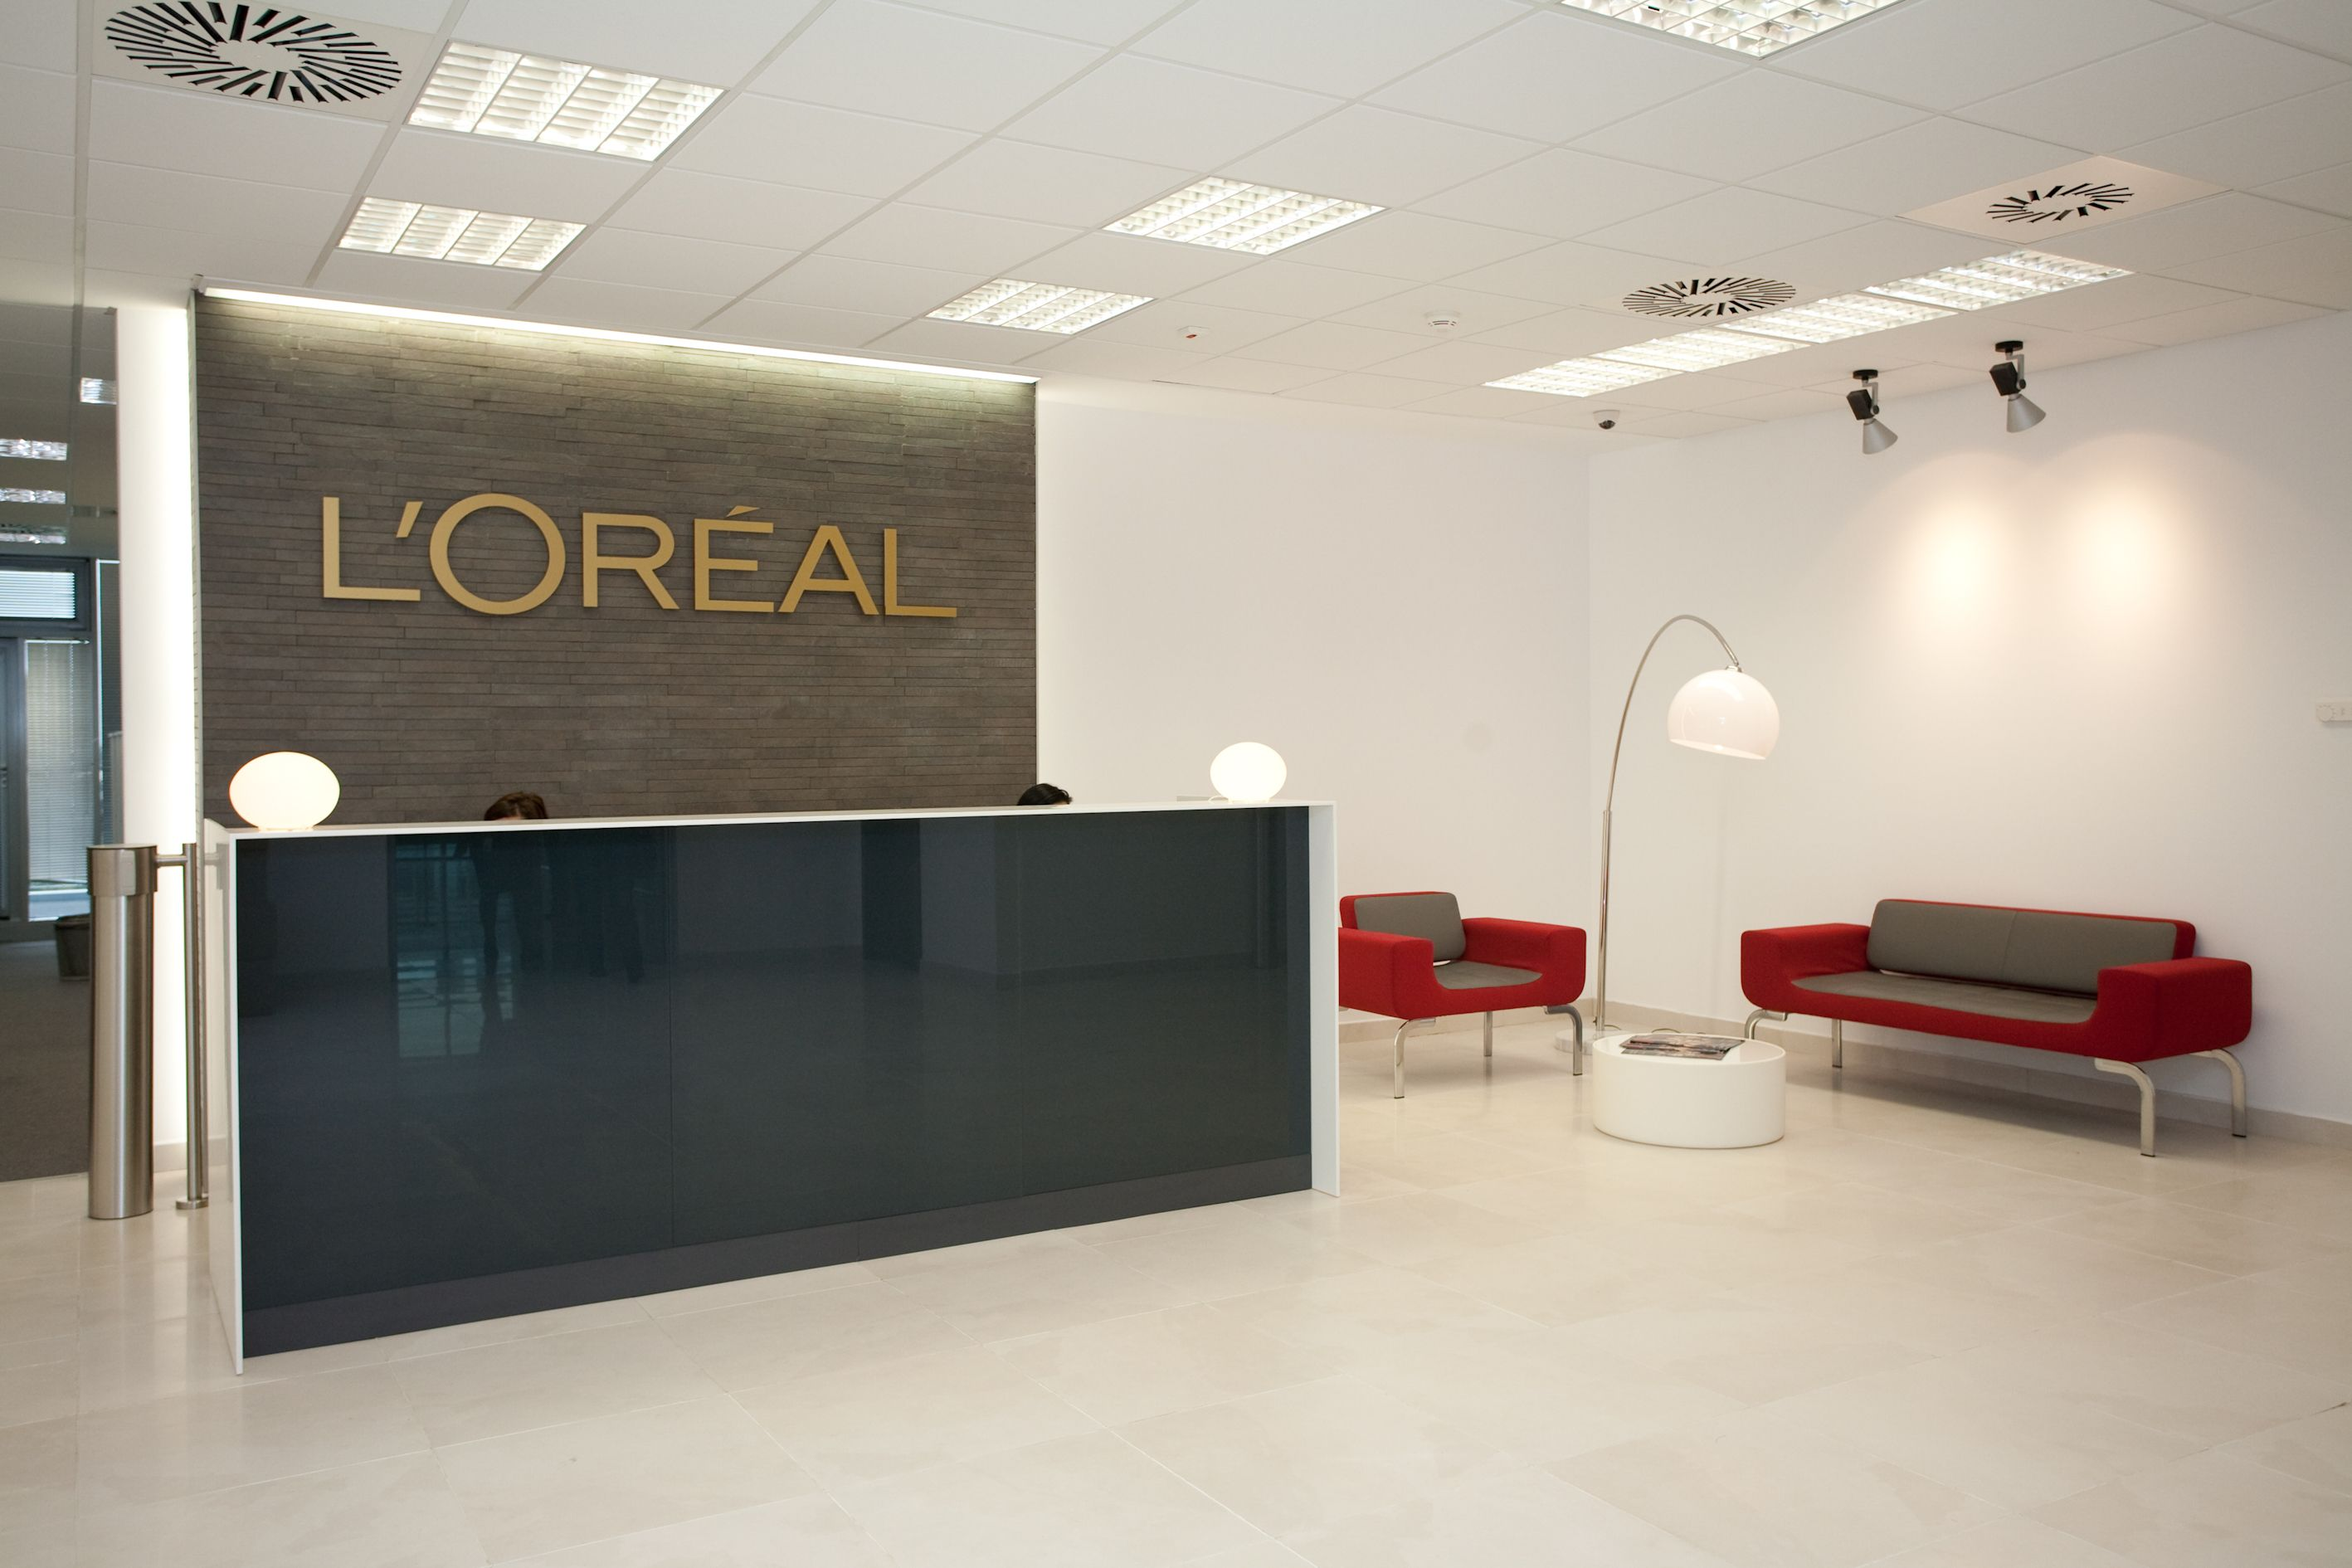 Office Entrance Design Lu0027Oreal Romania Entrance Area #Office #Interior #Design